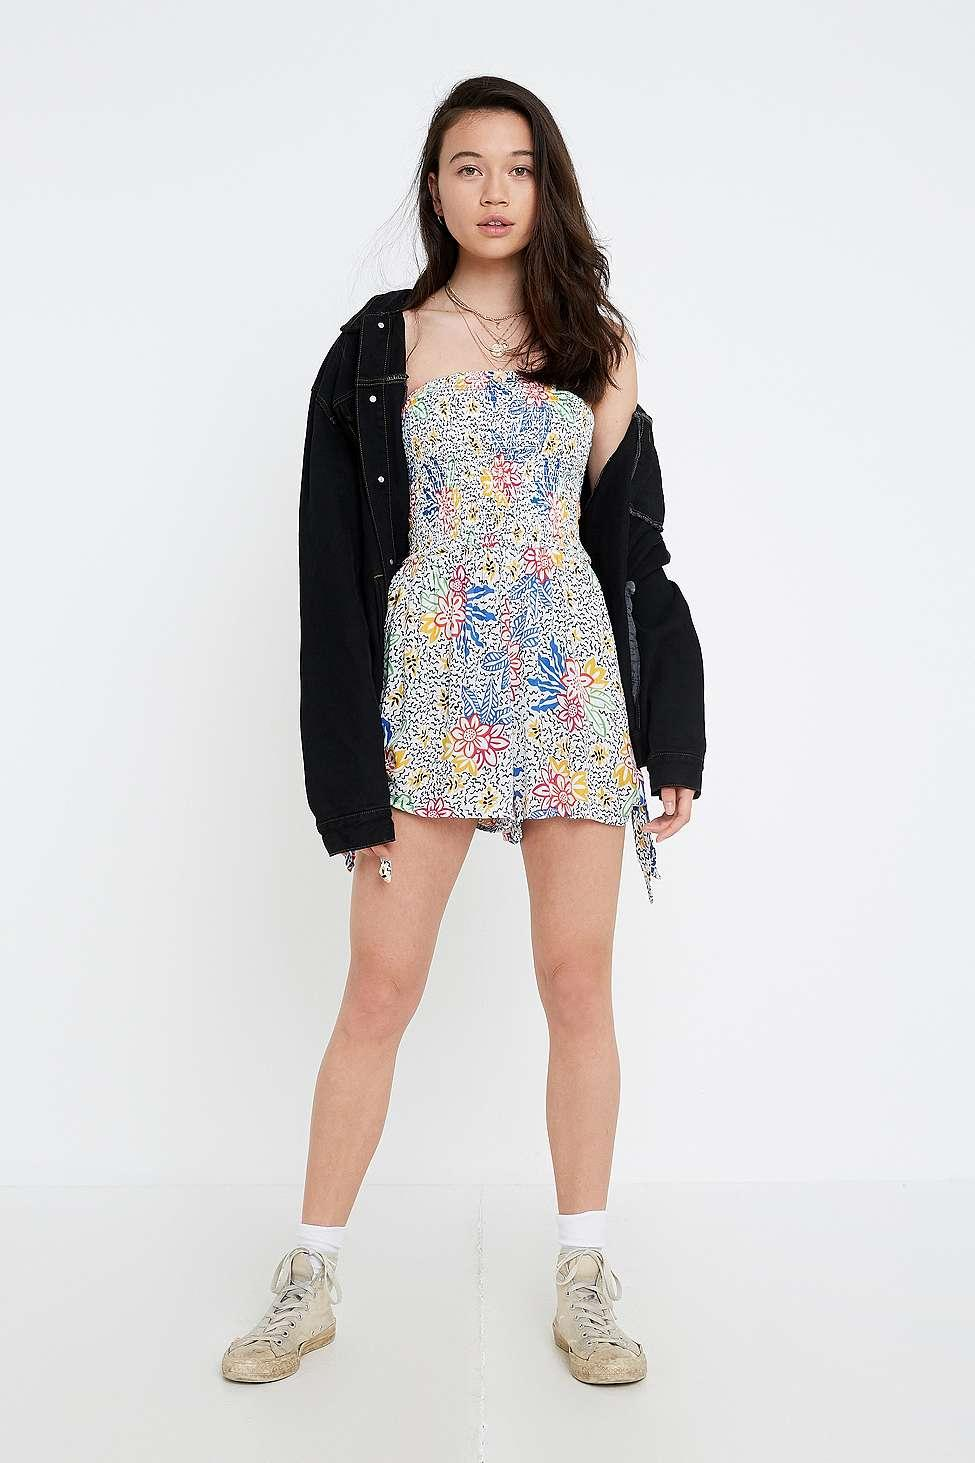 9093b3cbcd0 Urban Outfitters Uo Sherri Strapless Smocked Playsuit - Womens M in ...